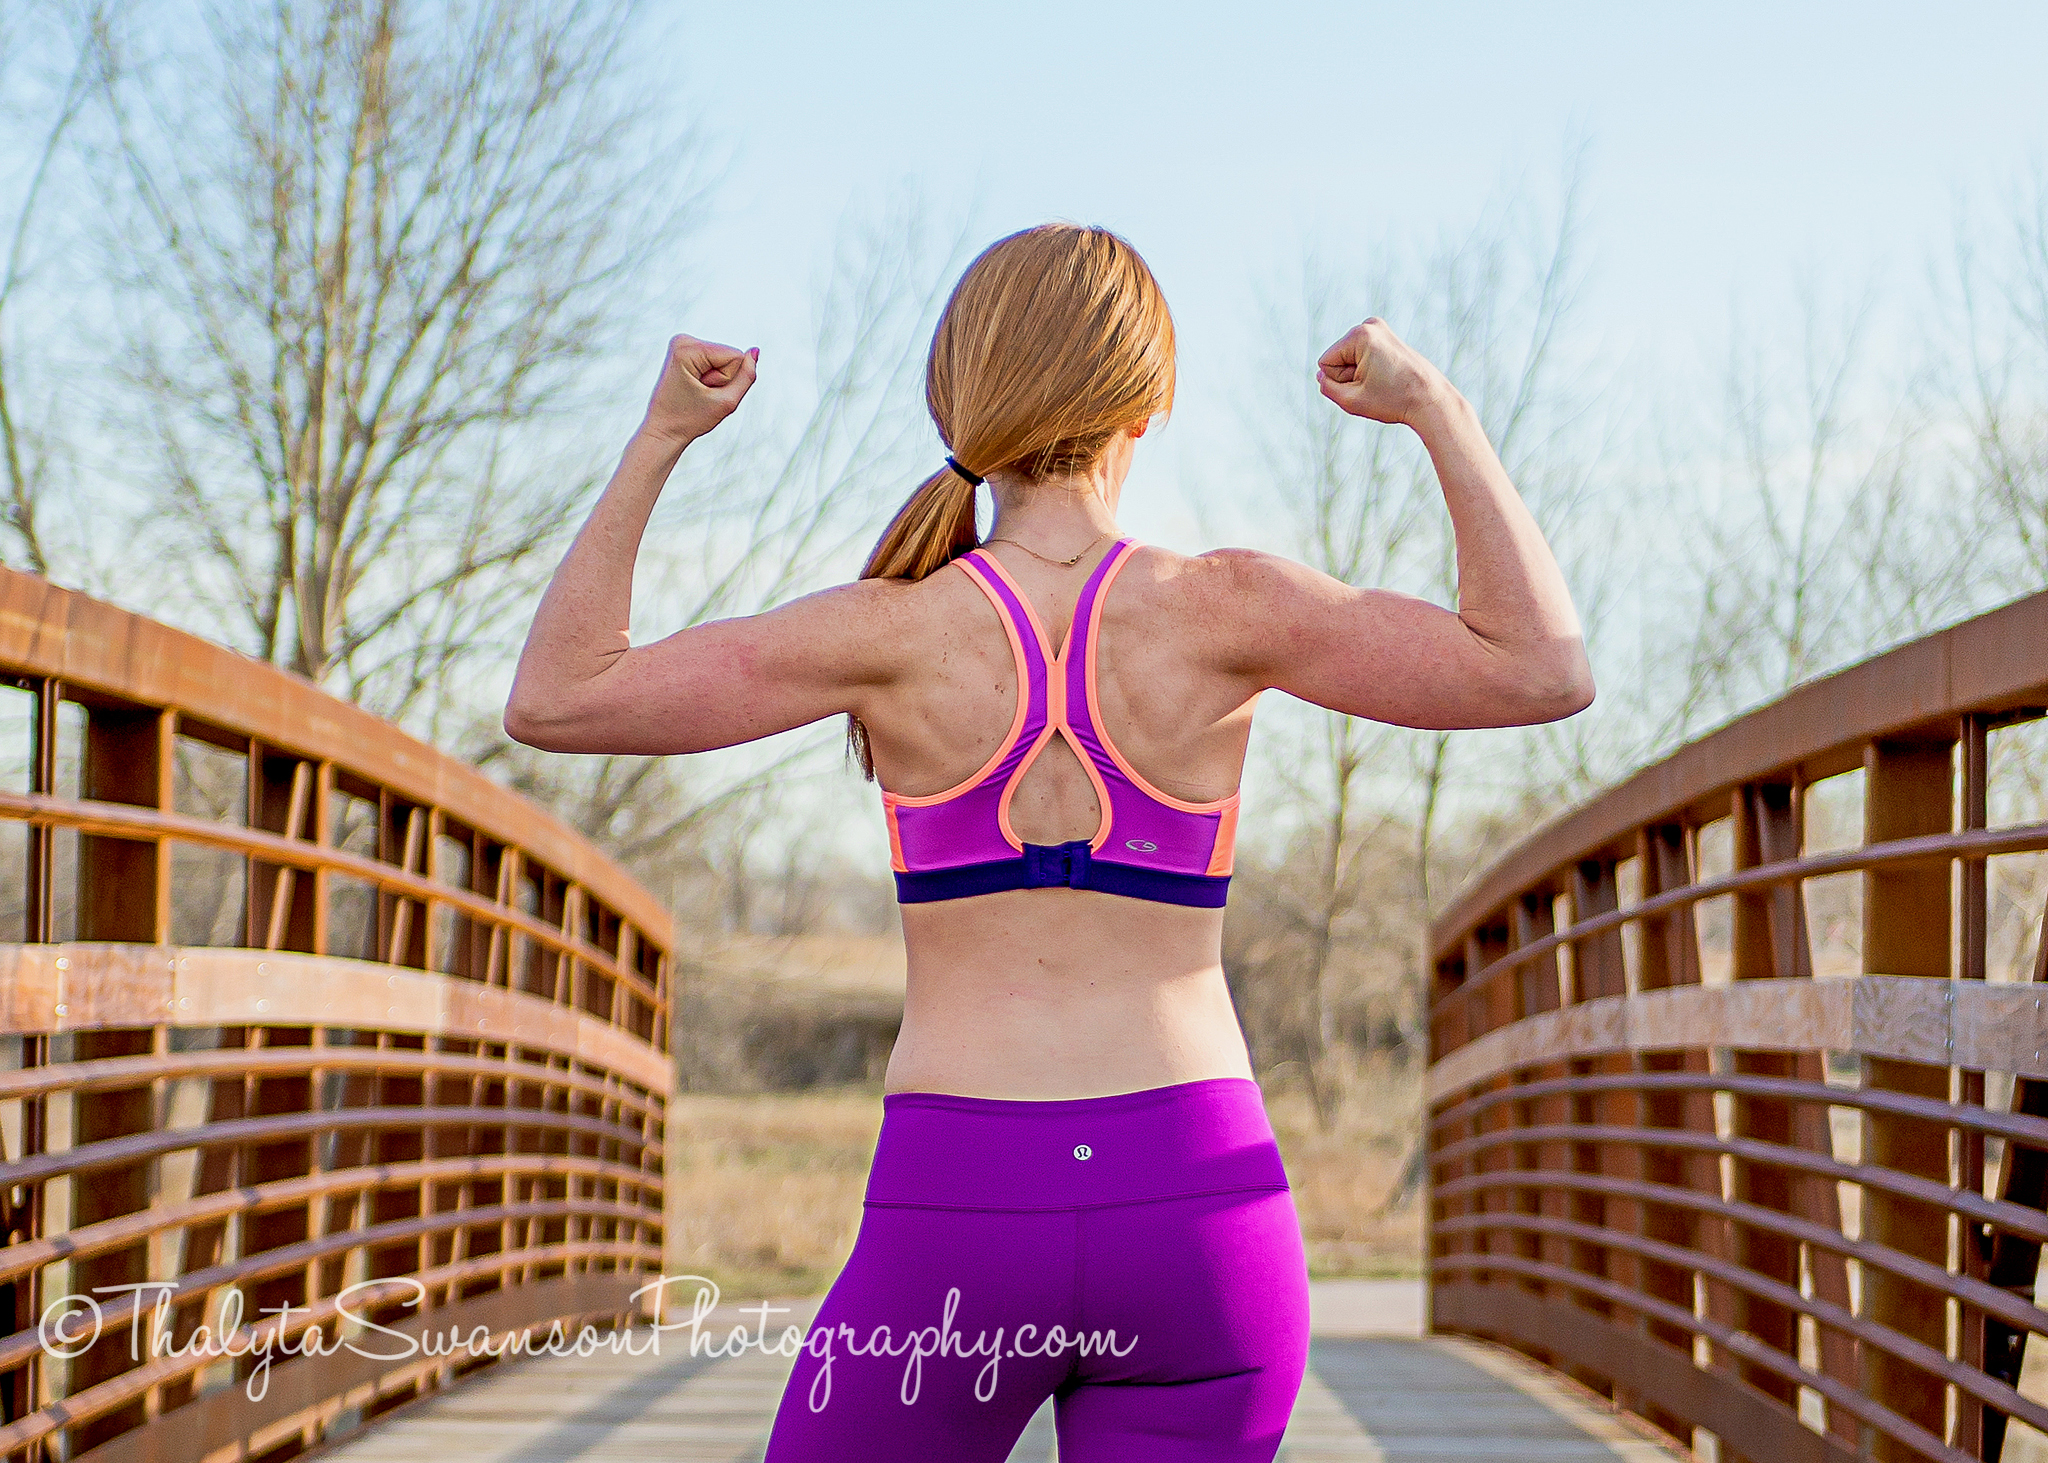 Thalyta Swanson Photography - Fitness Photos (10)